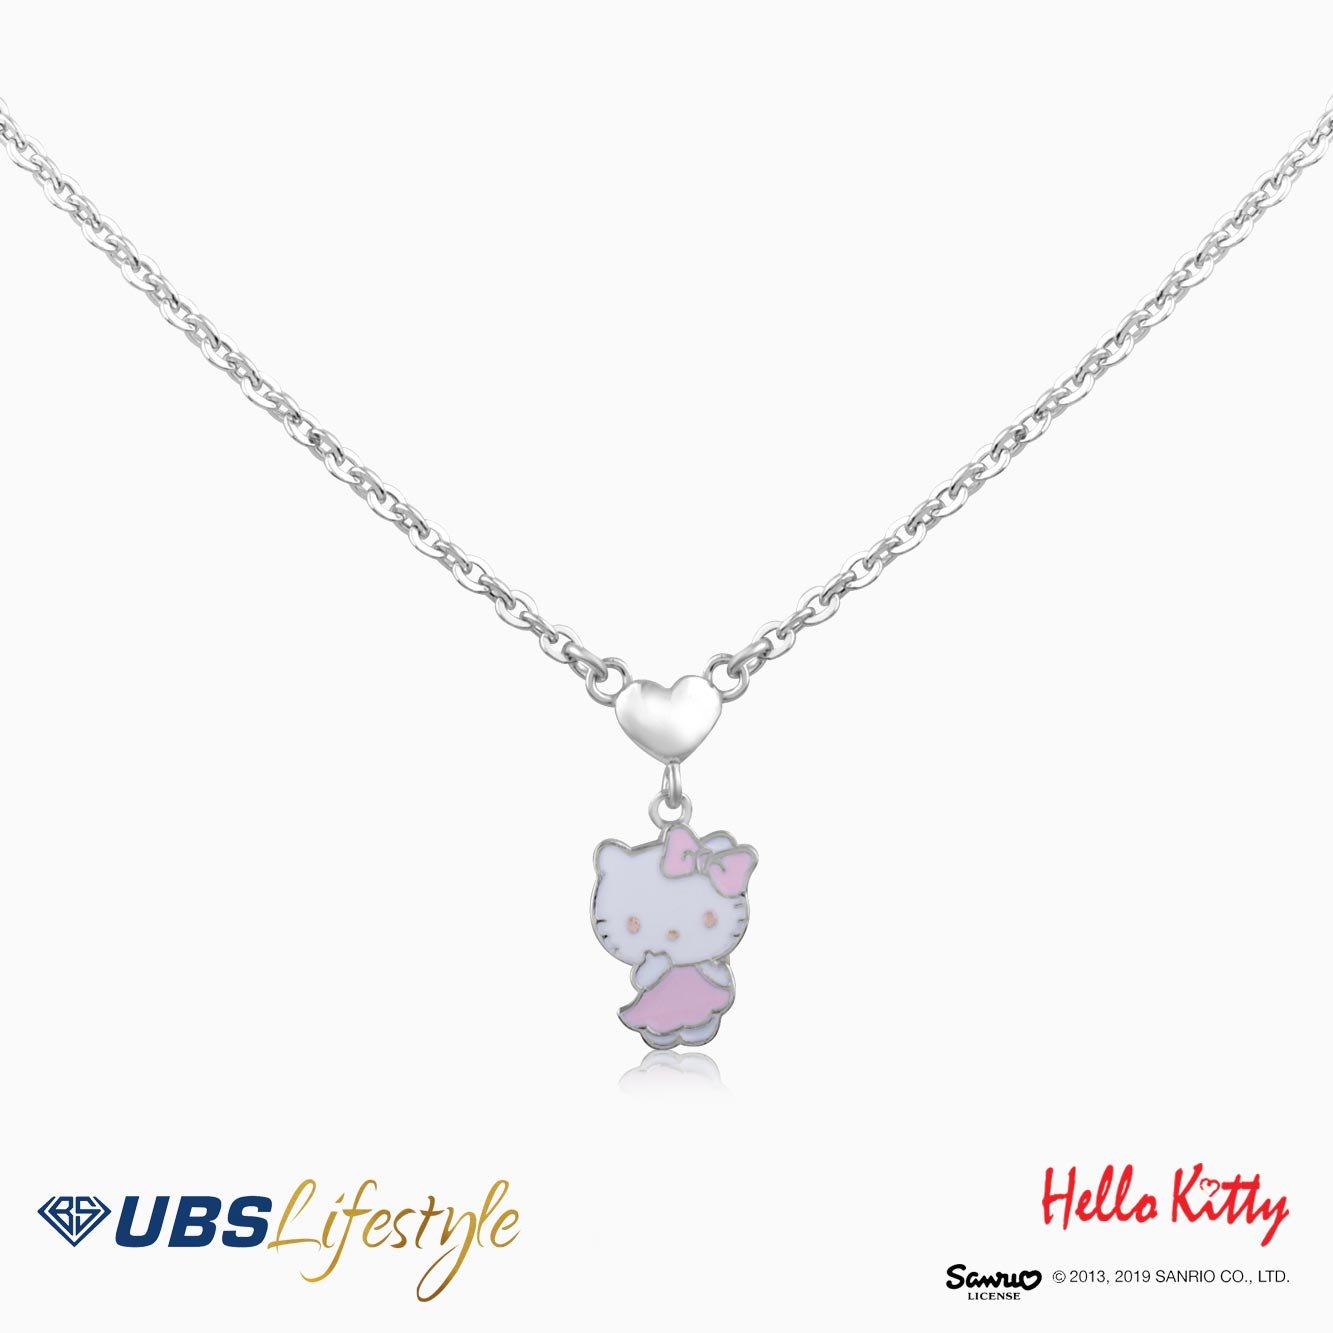 KALUNG ANAK SANRIO HELLO KITTY 17K